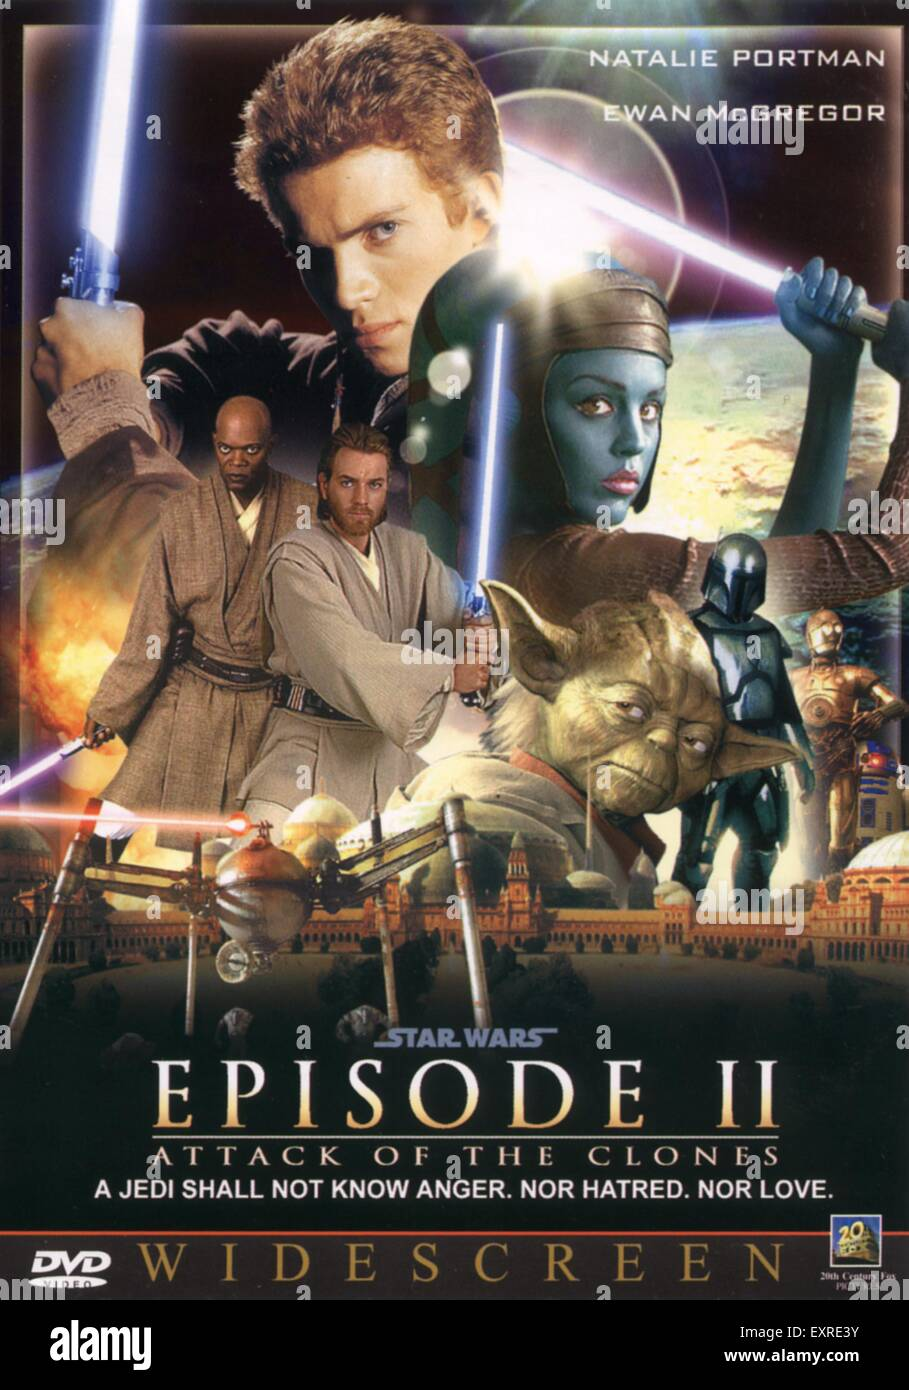 2000er Jahre UK Star Wars Filmposter Stockfoto, Bild: 85338511 - Alamy